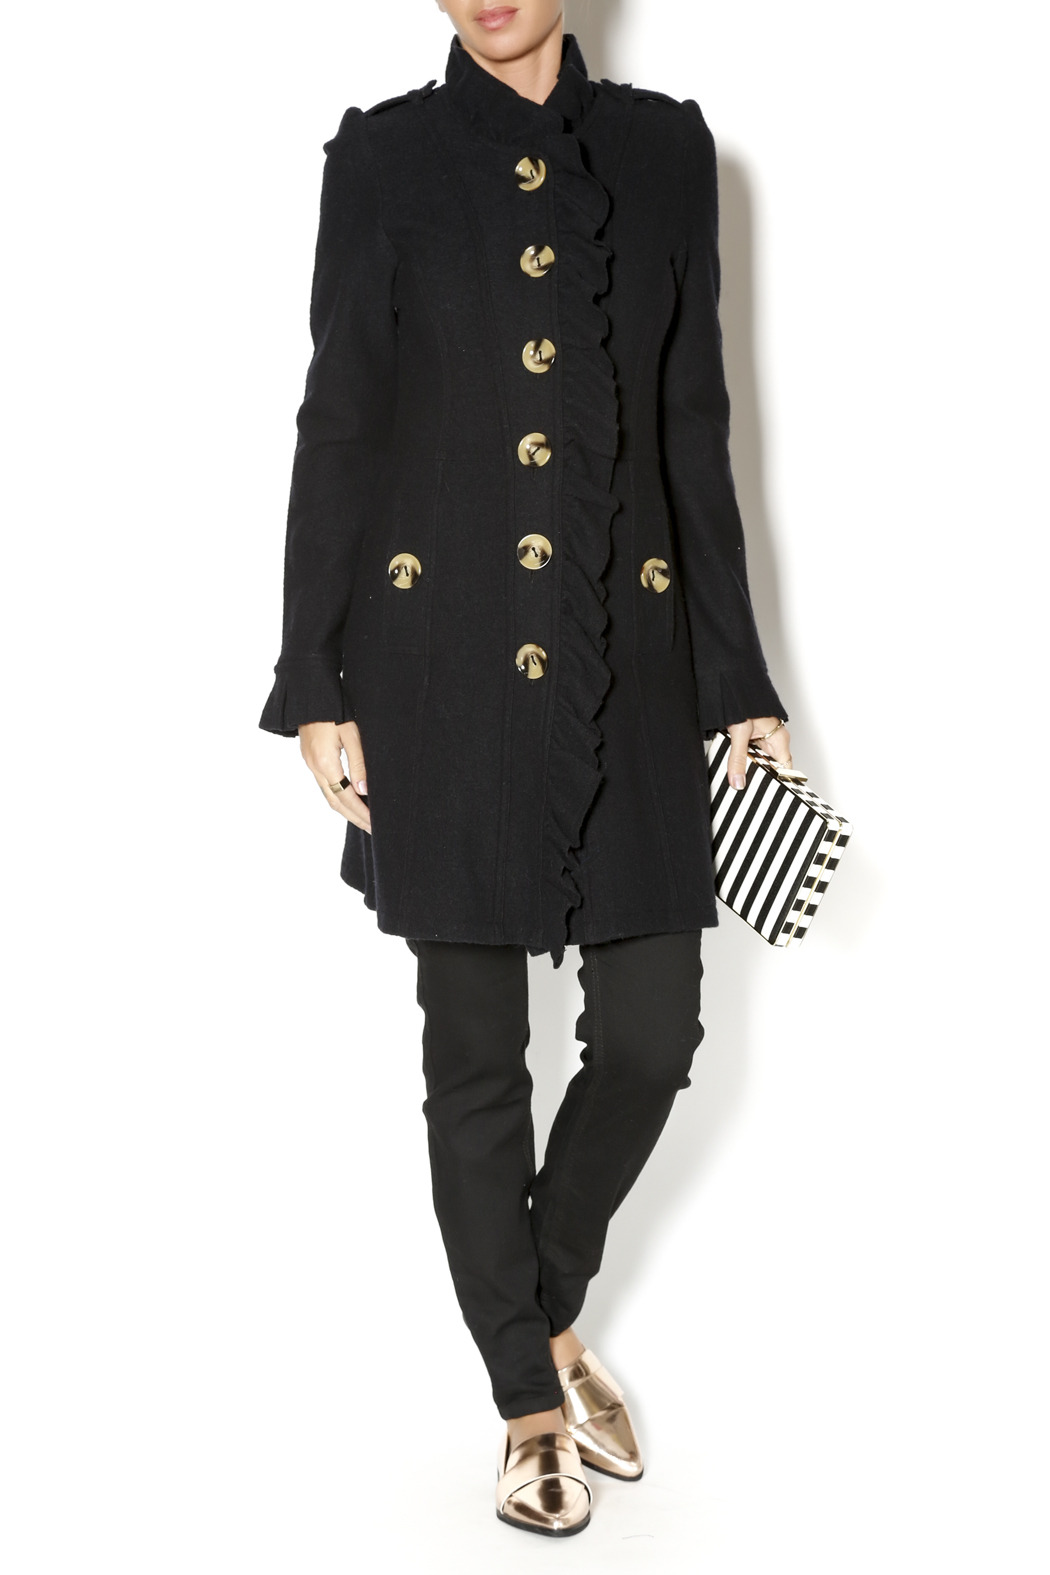 Luii Black Ruffle Jacket from Portland by Frock Boutique — Shoptiques